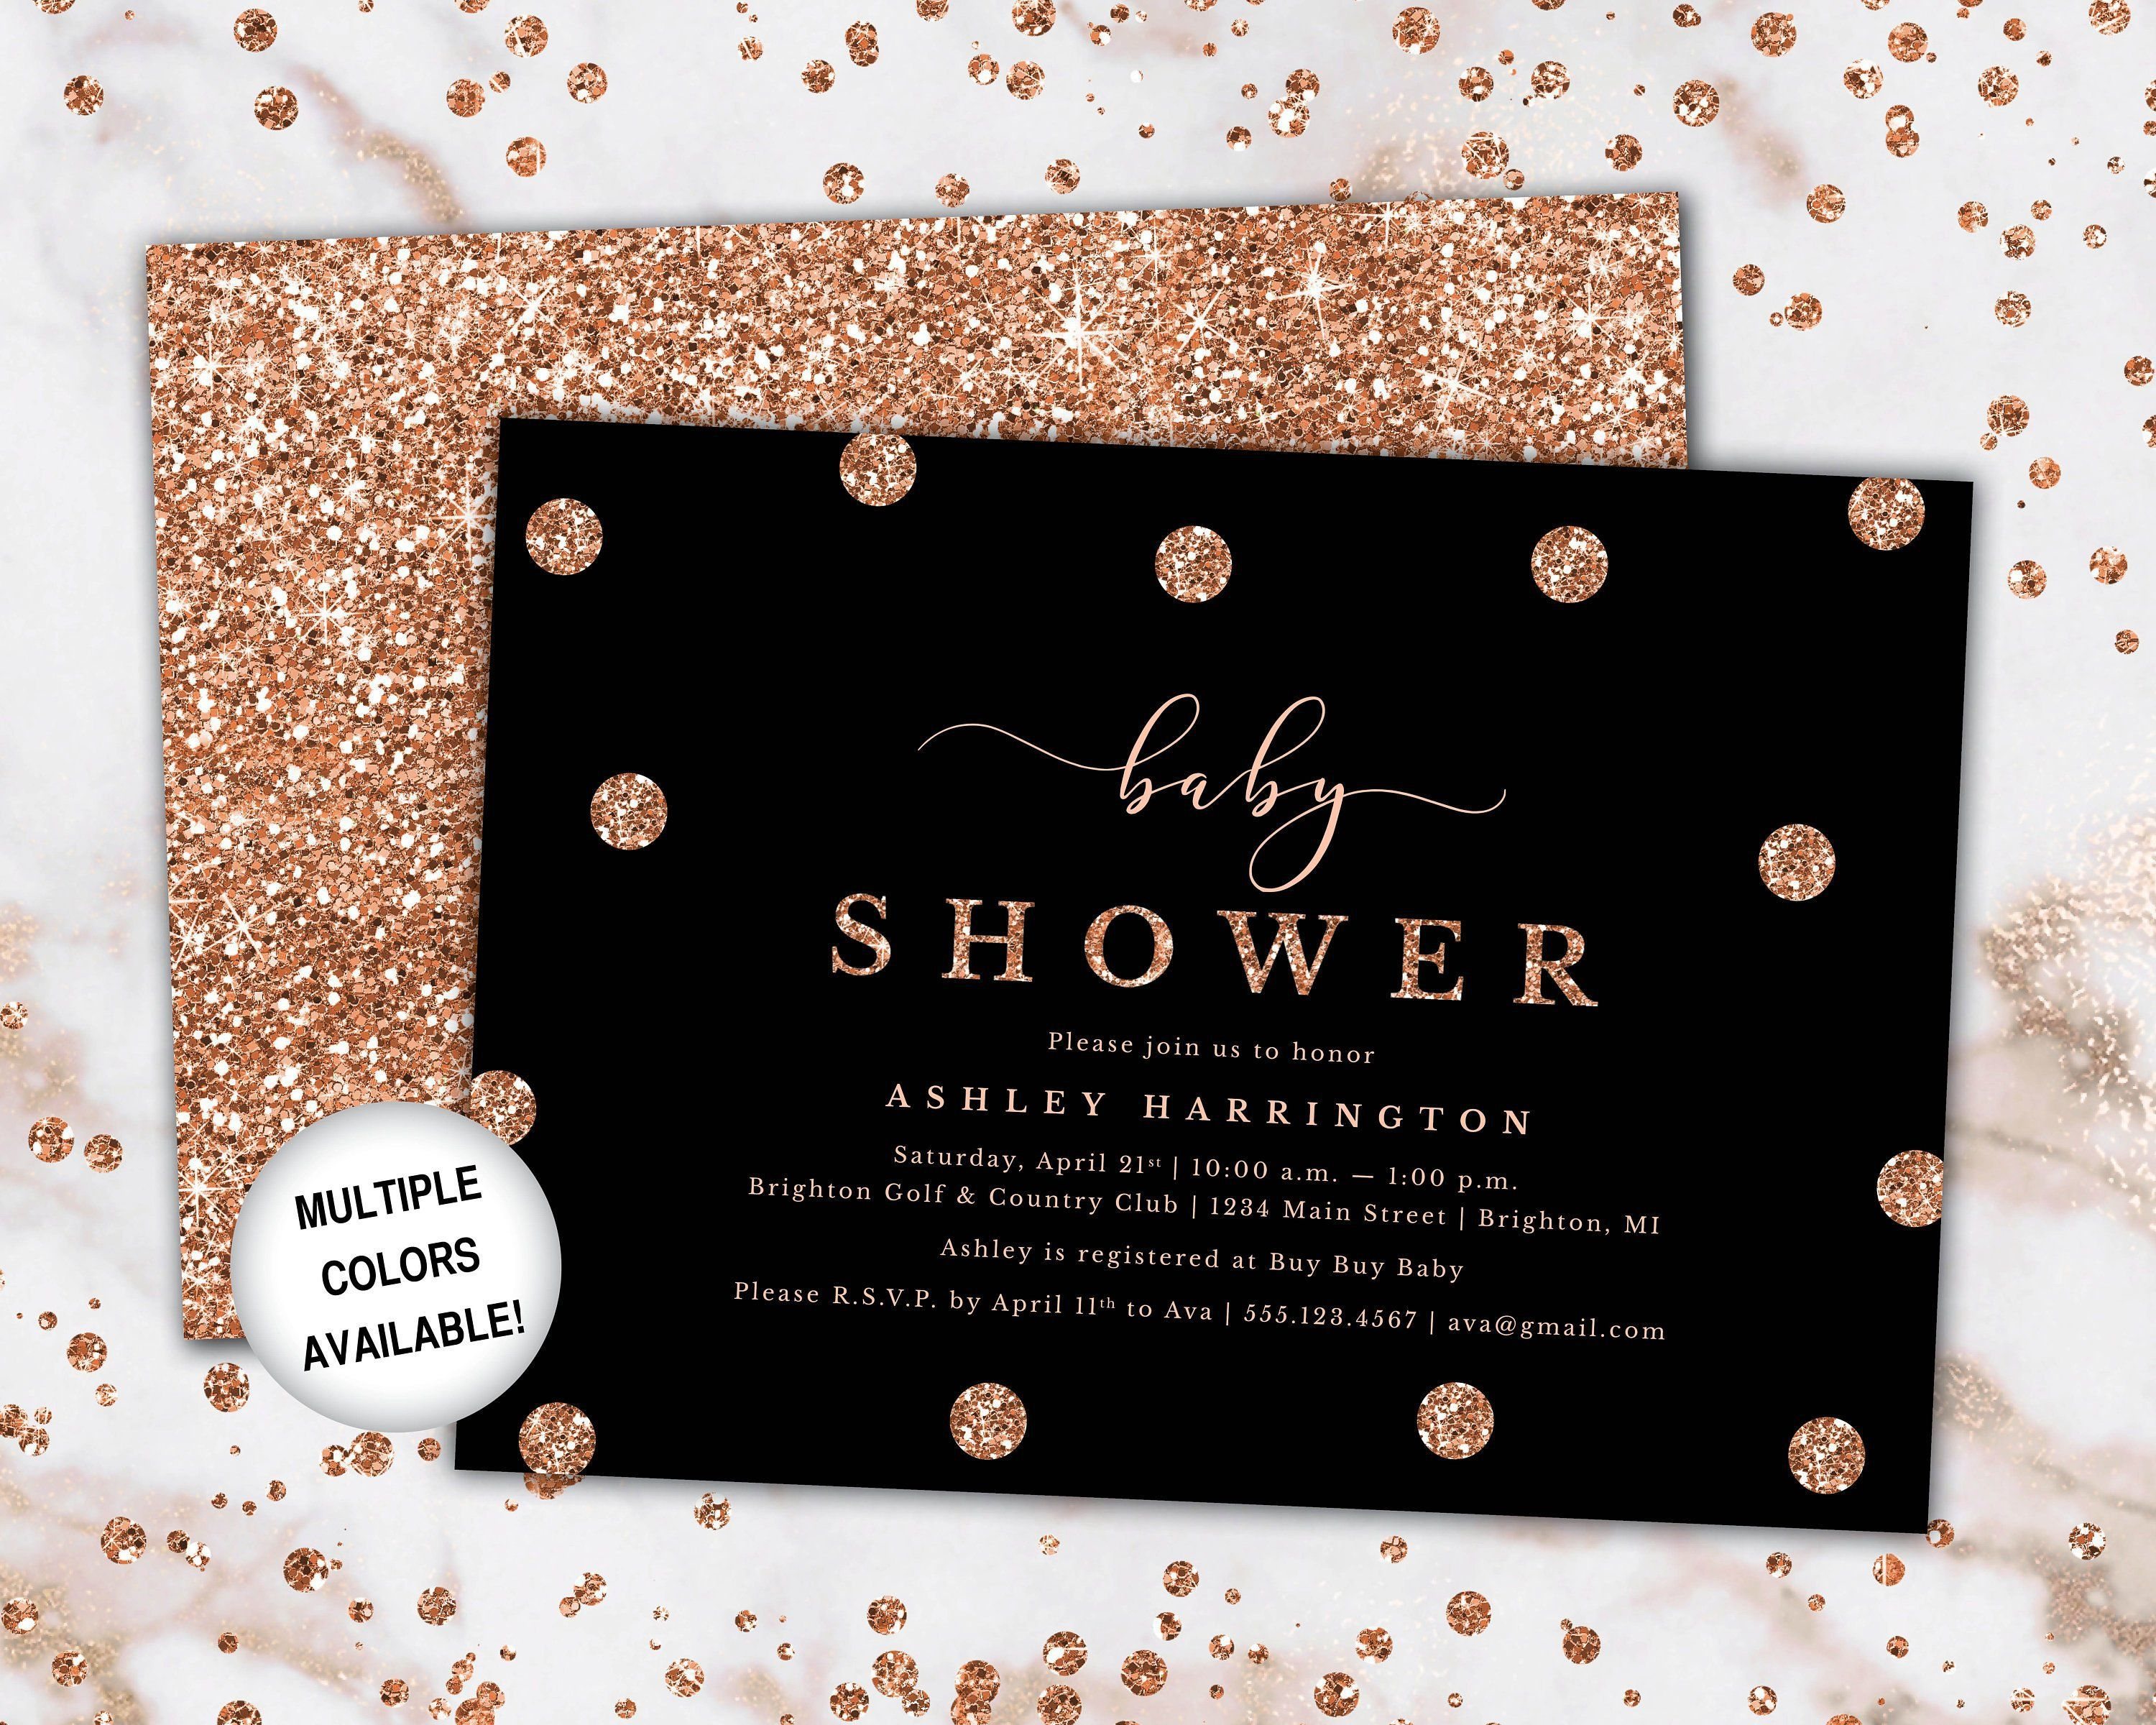 003 Fascinating Diy Baby Shower Invitation Template Image  Templates DiaperFull